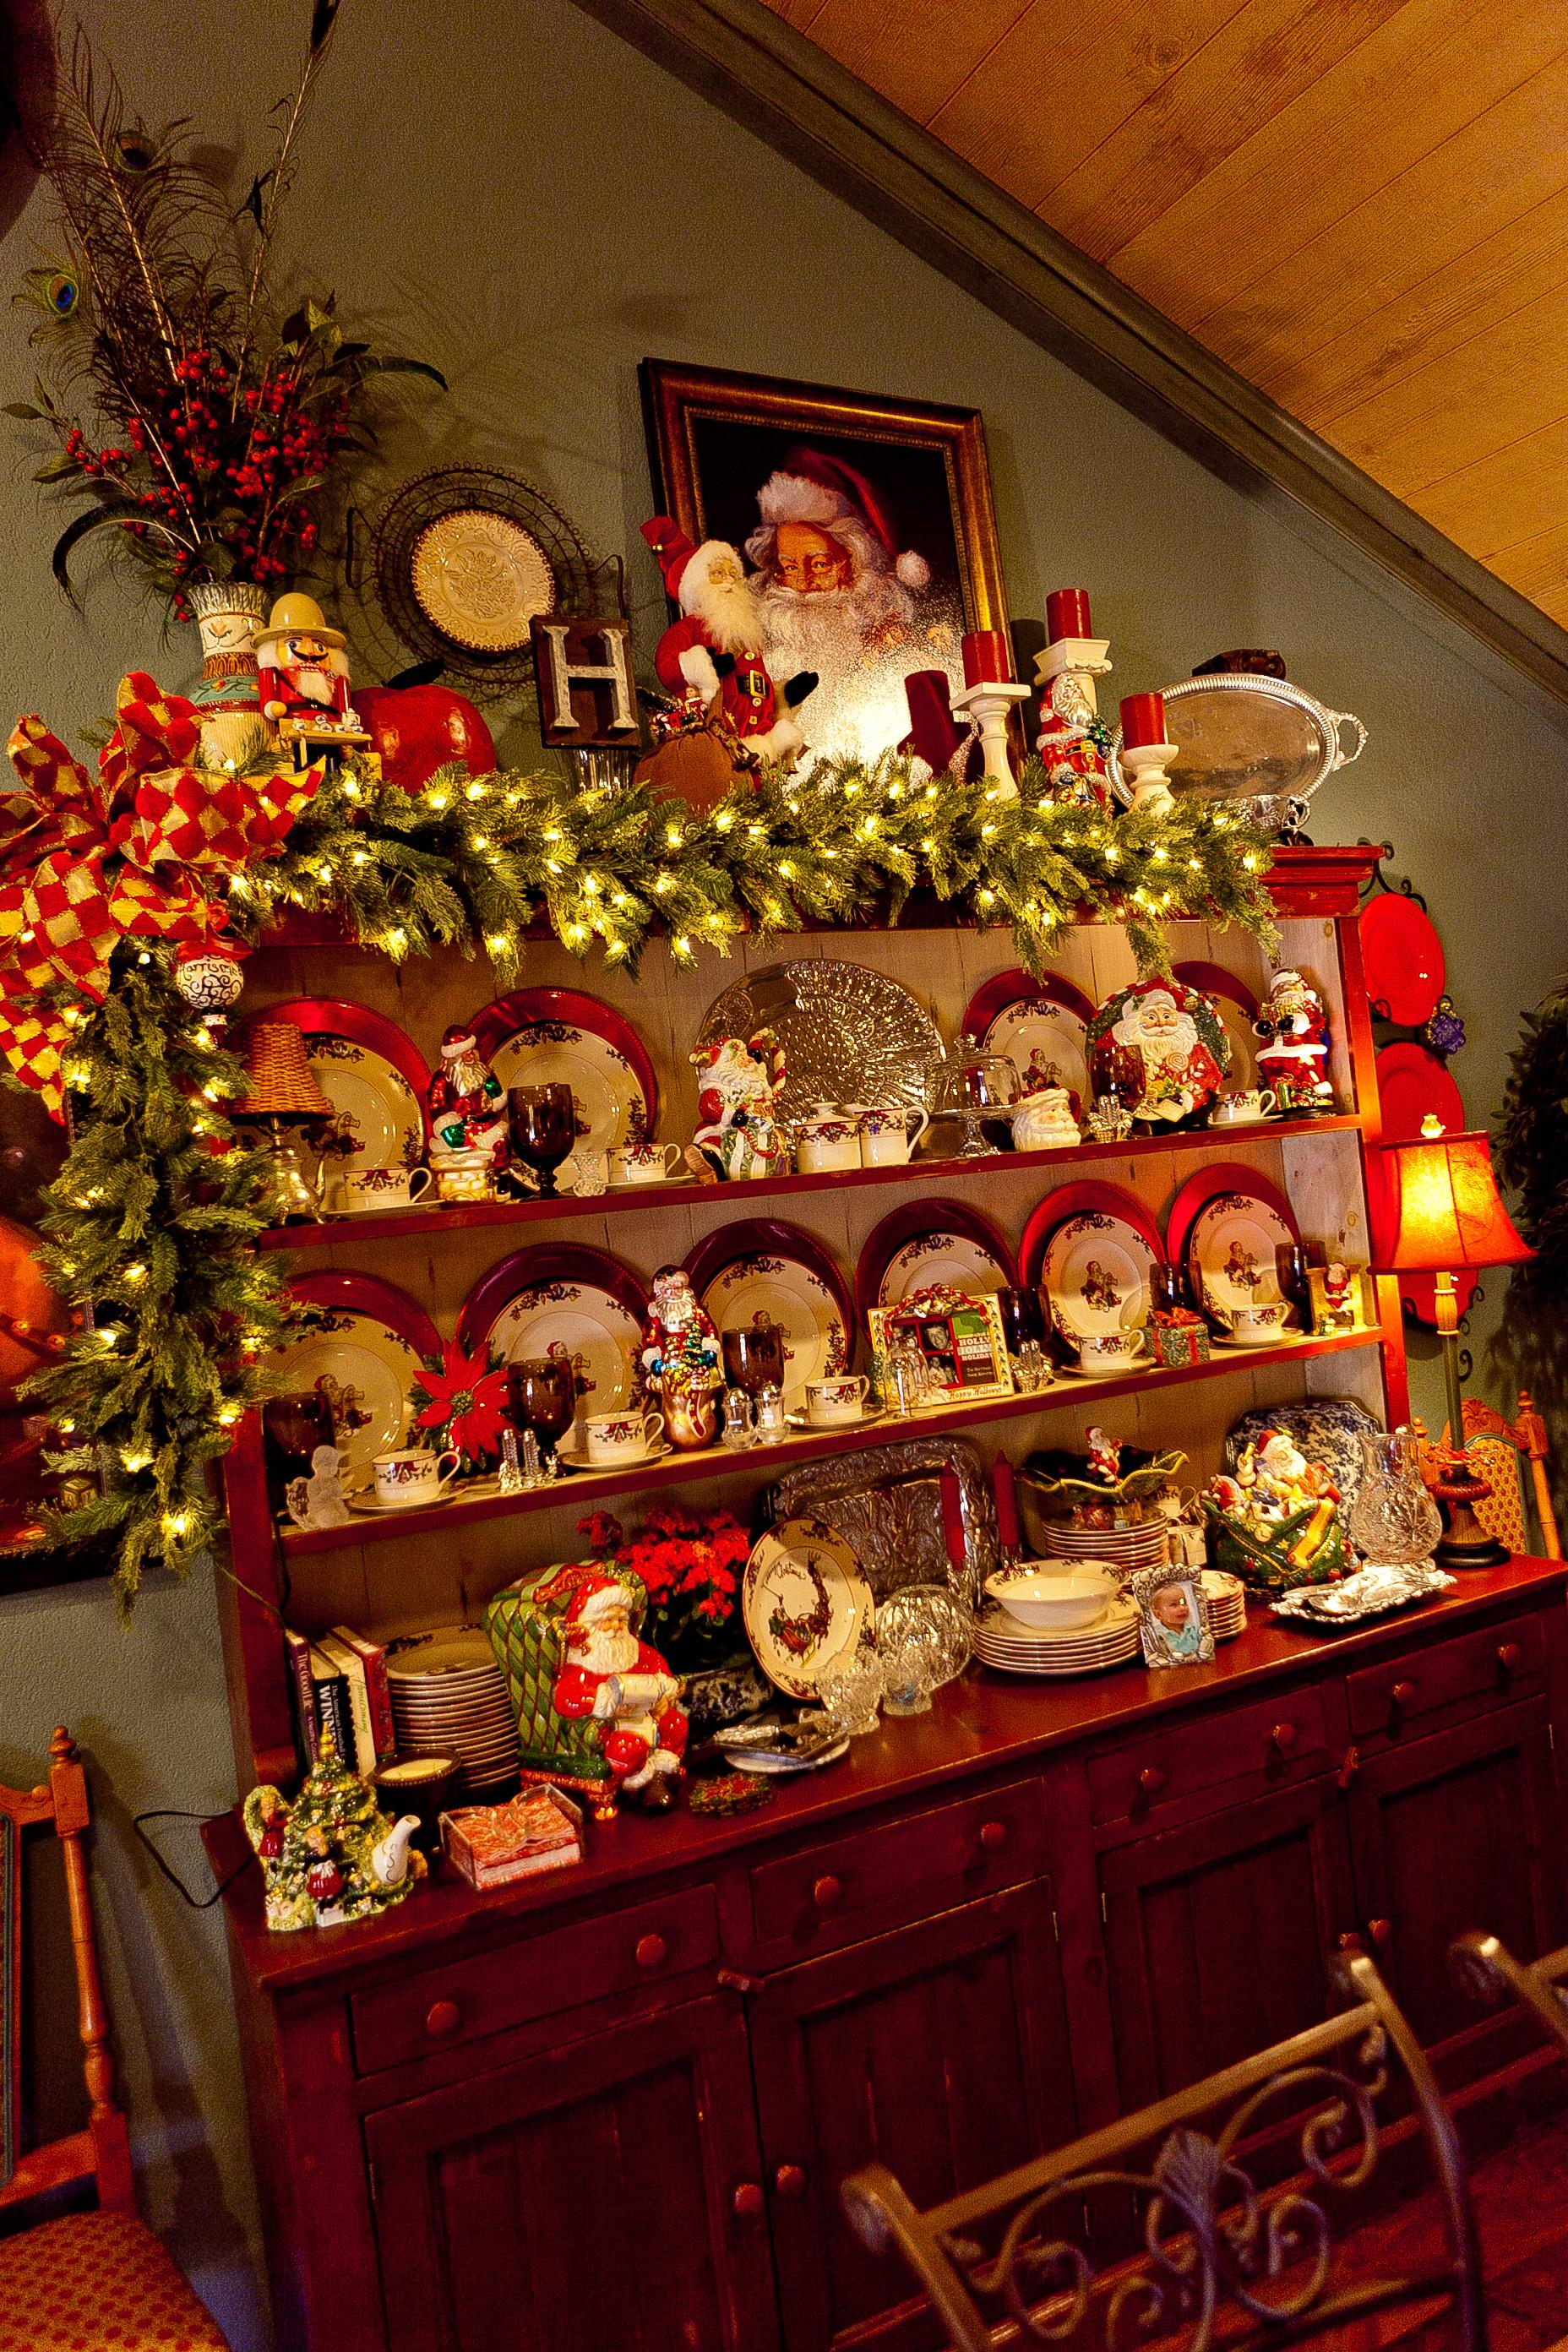 Show More Country French Home Decorated